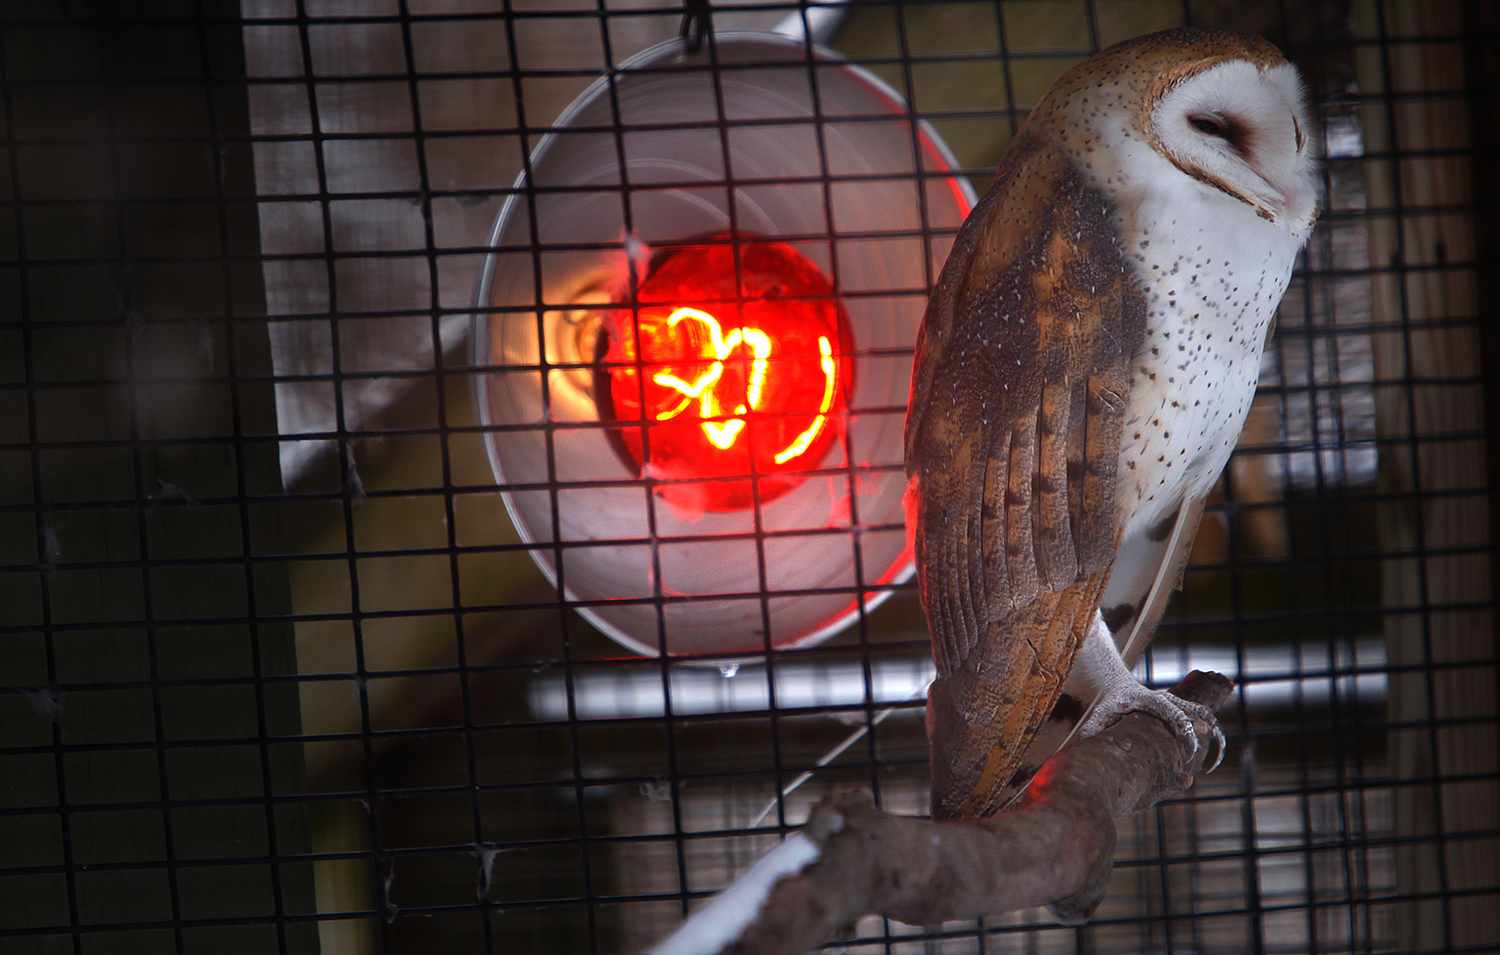 A Common Barn Owl situates itself just so in order to take full advantage of a heat lamp set up outside its' enclosure on Friday, Mar. 1, 2013. Contrary to the beliefs of a few members of the public, Henson Robinson Zoo is open full time during the Winter. The animals, numbering around 250, according to zoo director Talon Thornton, are not transported to Florida for a warm vacation, but stay in residence full time. In fact, winter is an ideal time to check them out, and with human visitors few, it almost feels like a private menagerie. David Spencer/The State Journal-Register